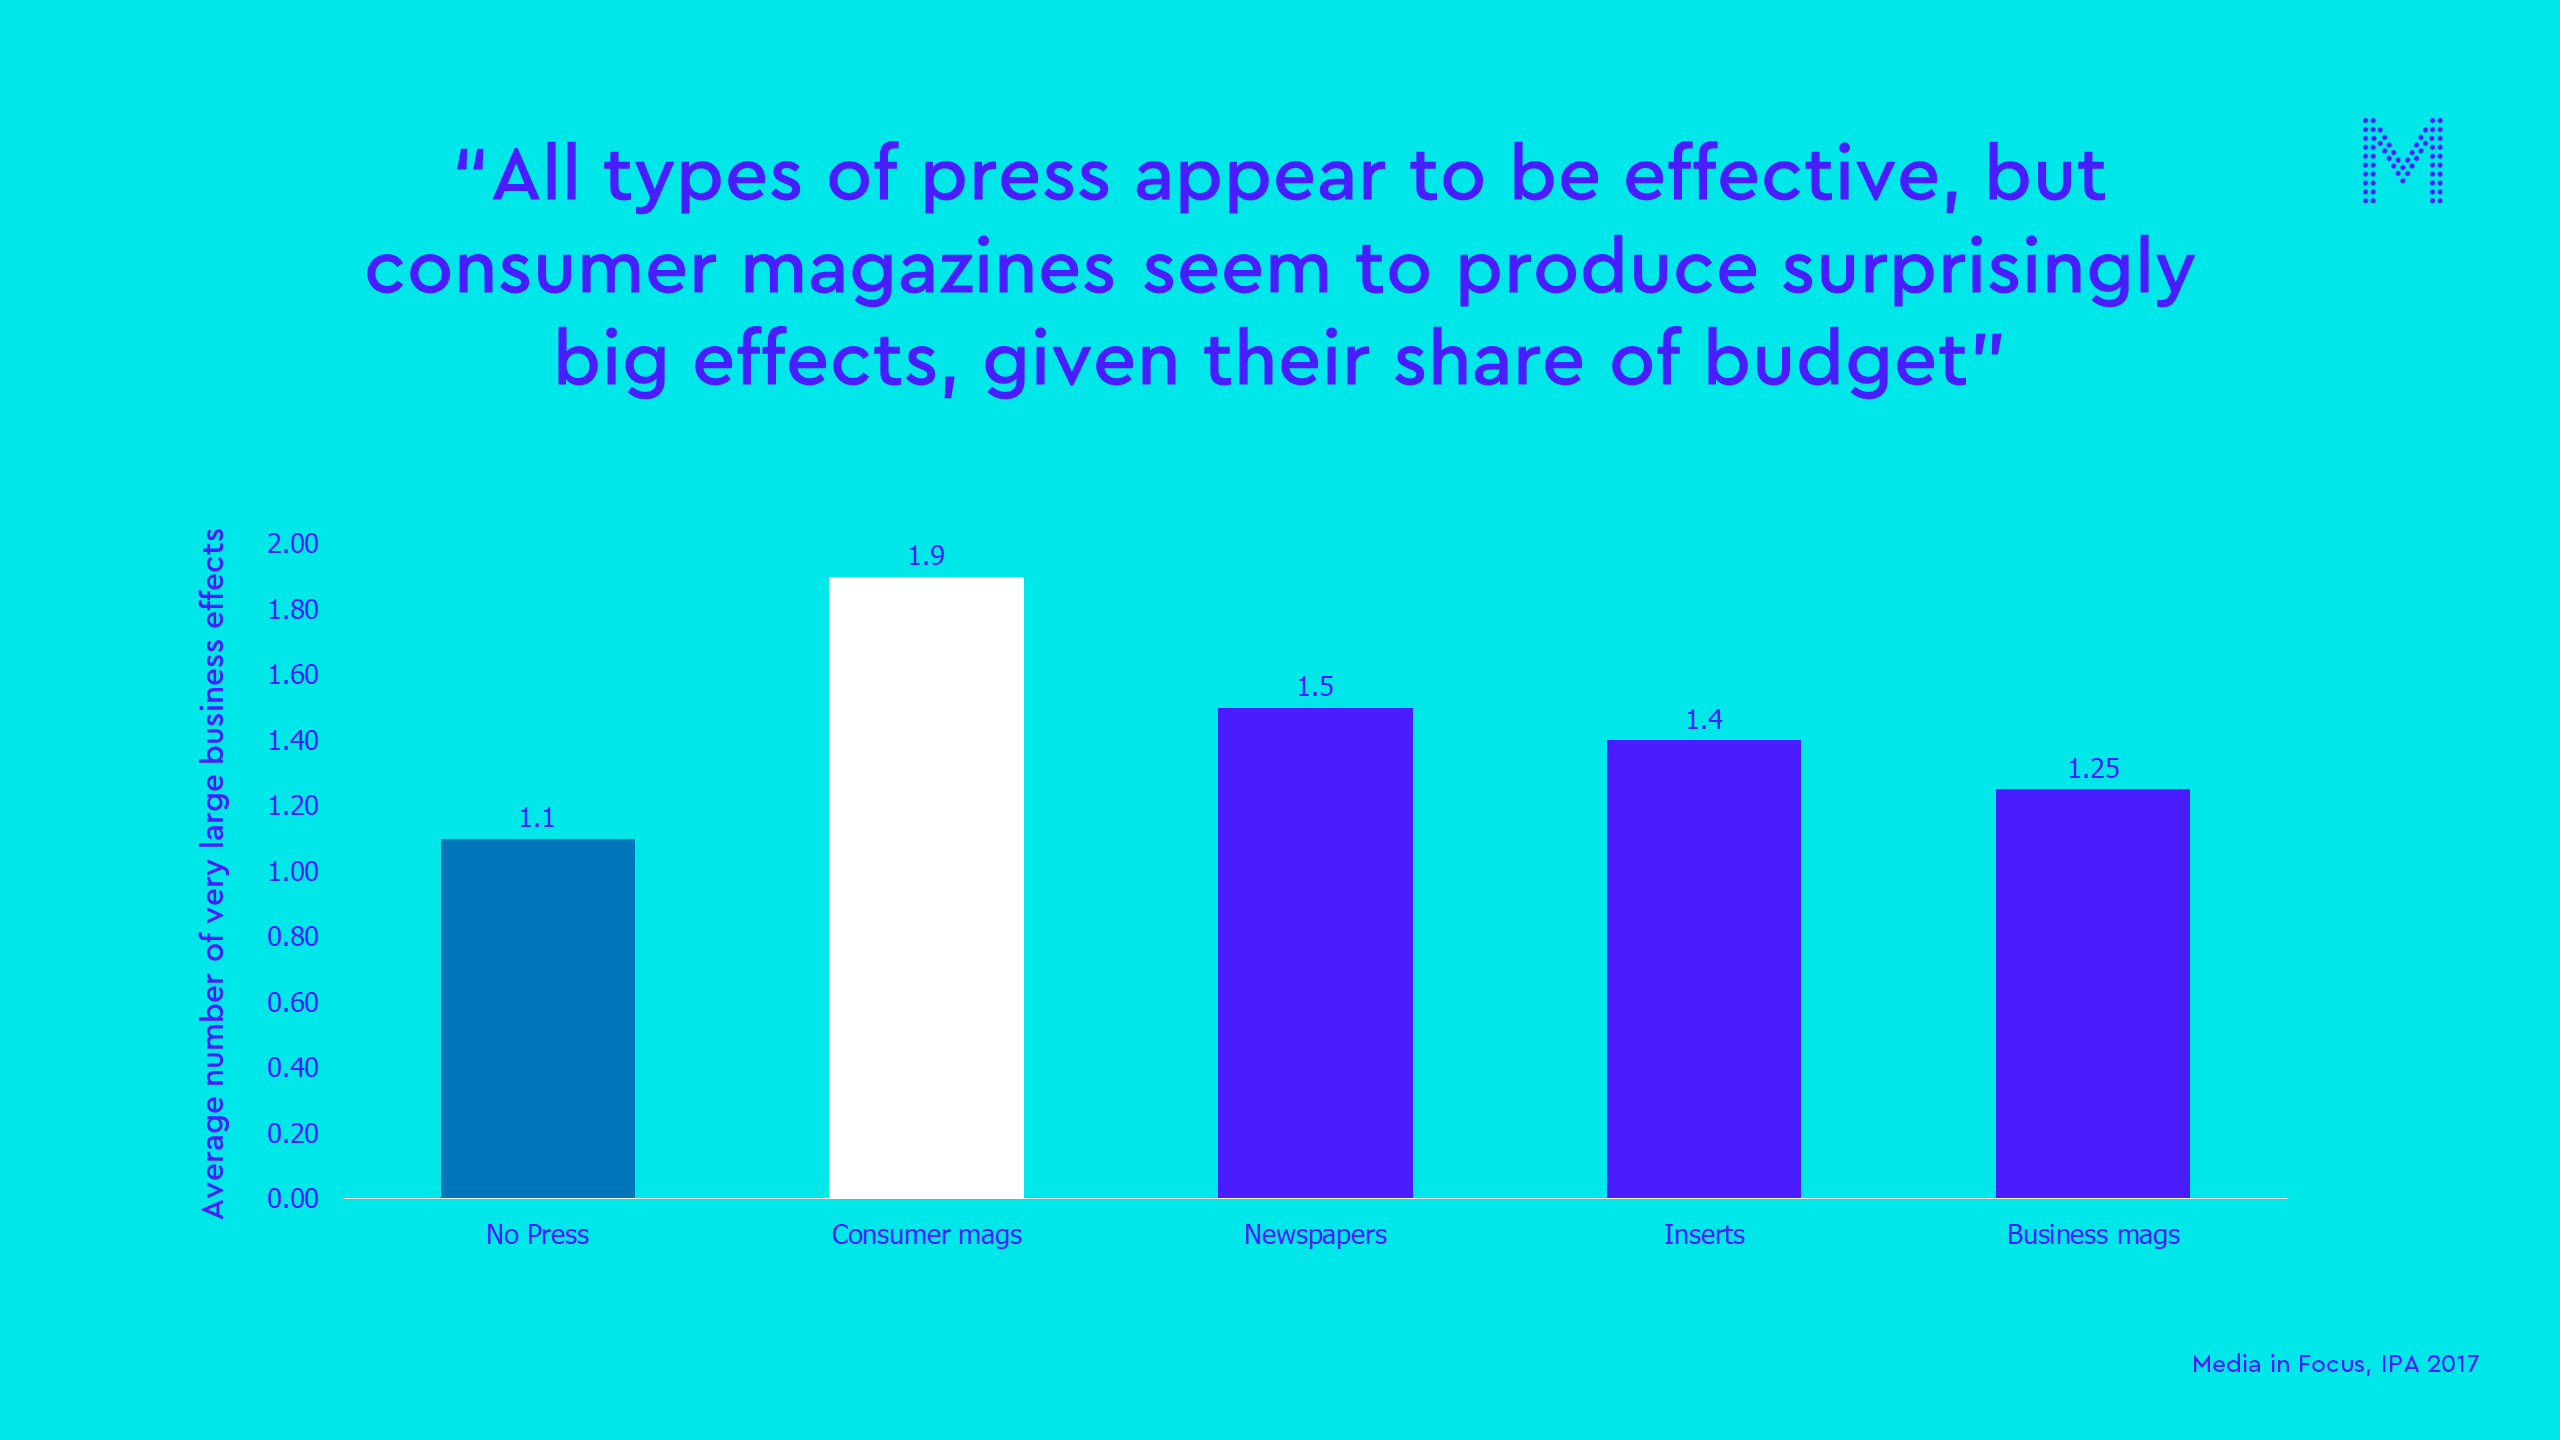 All types of press appear to be effective, but consumer magazines seem to produce